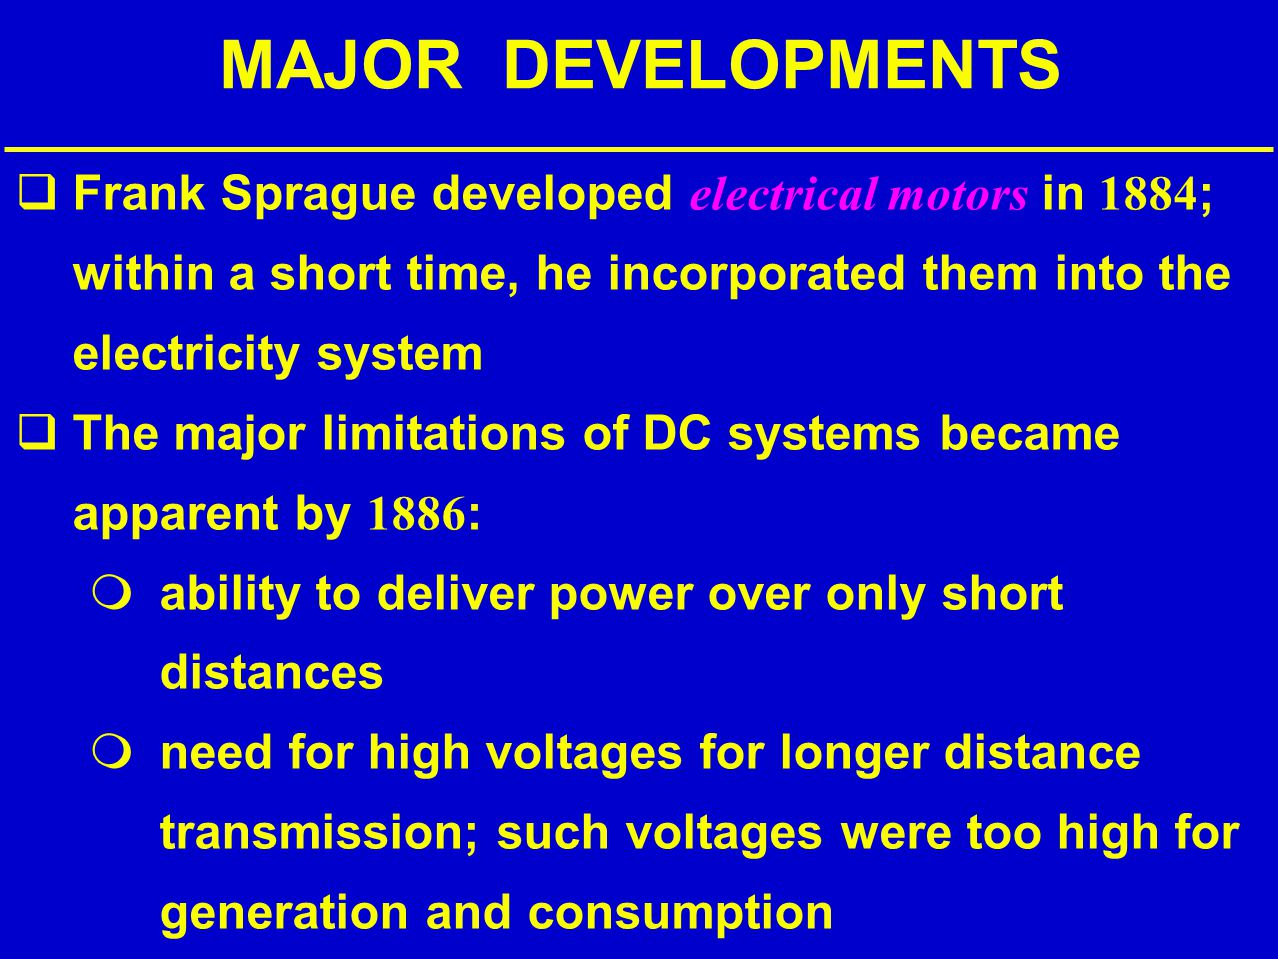 ECE 476 POWER SYSTEM ANALYSIS Lecture 1 - ppt download